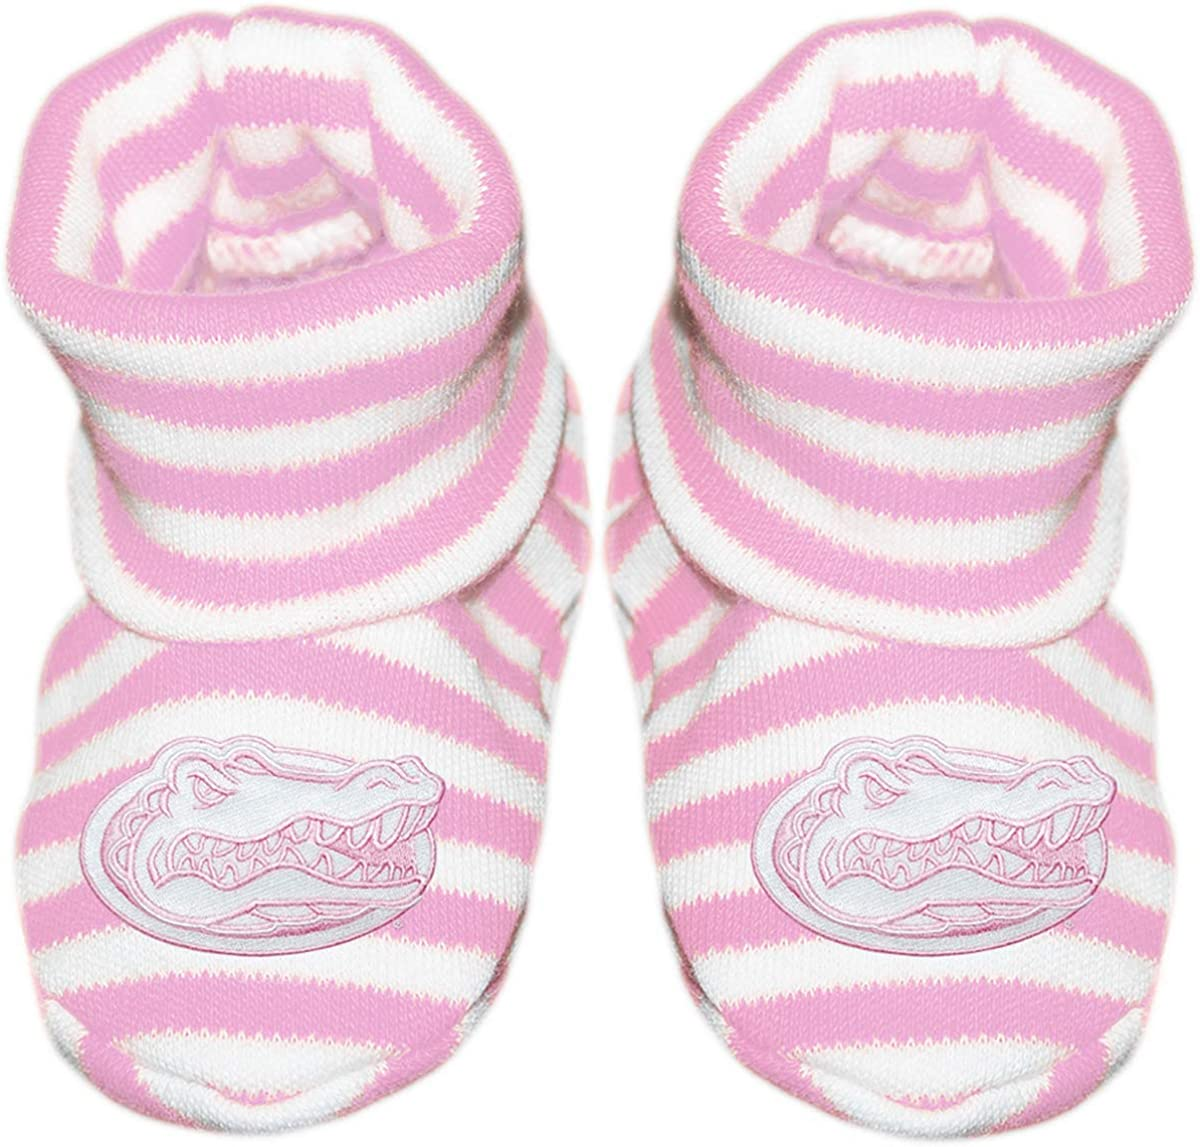 University of Florida Gators Newborn Baby Striped Bootie Sock